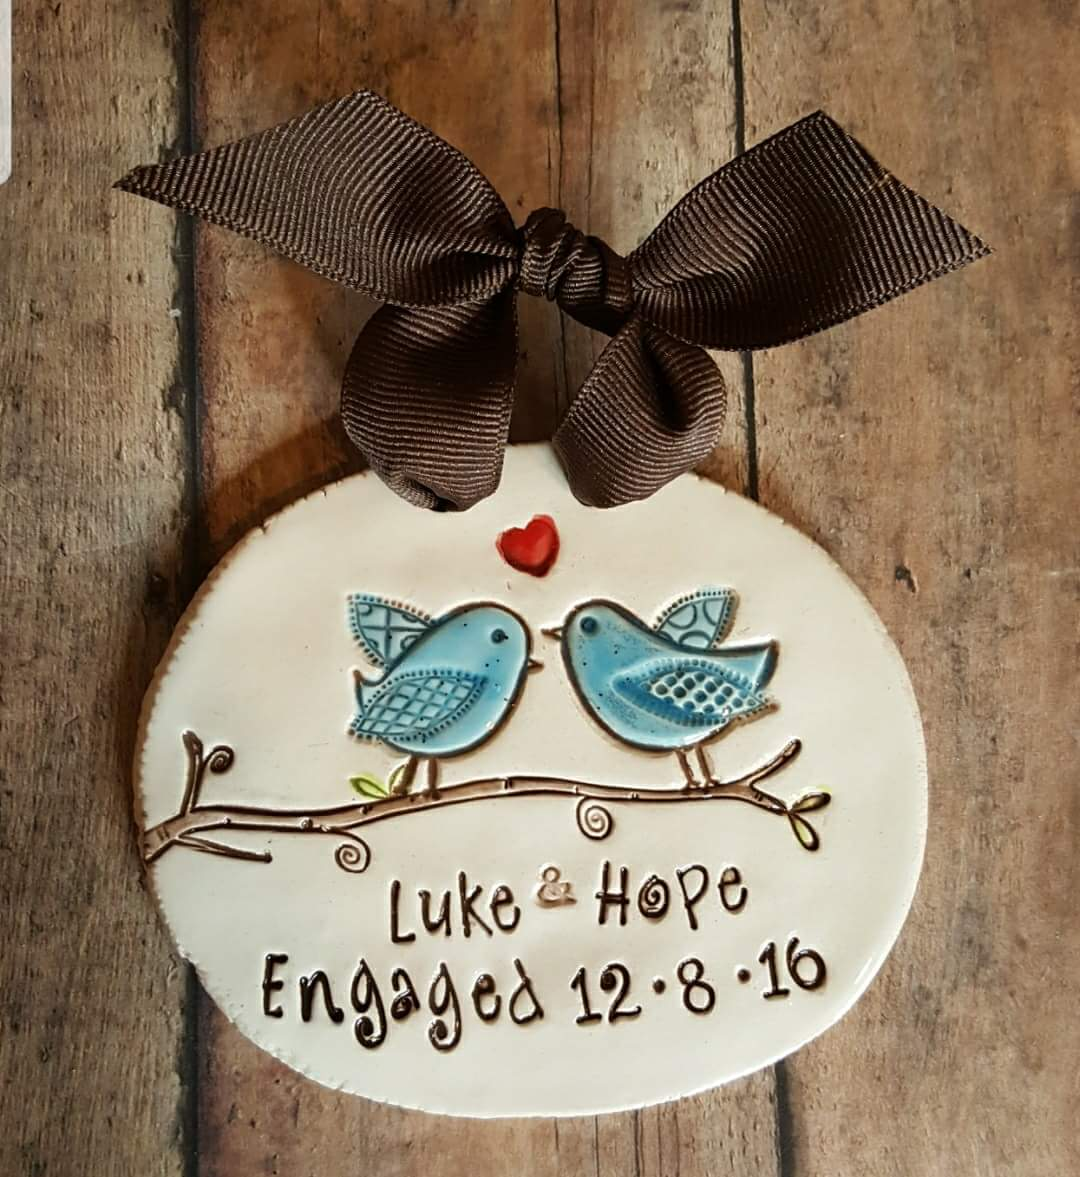 MudHutt Studio Lovebirds Engagement Anniversary Wedding Ornament